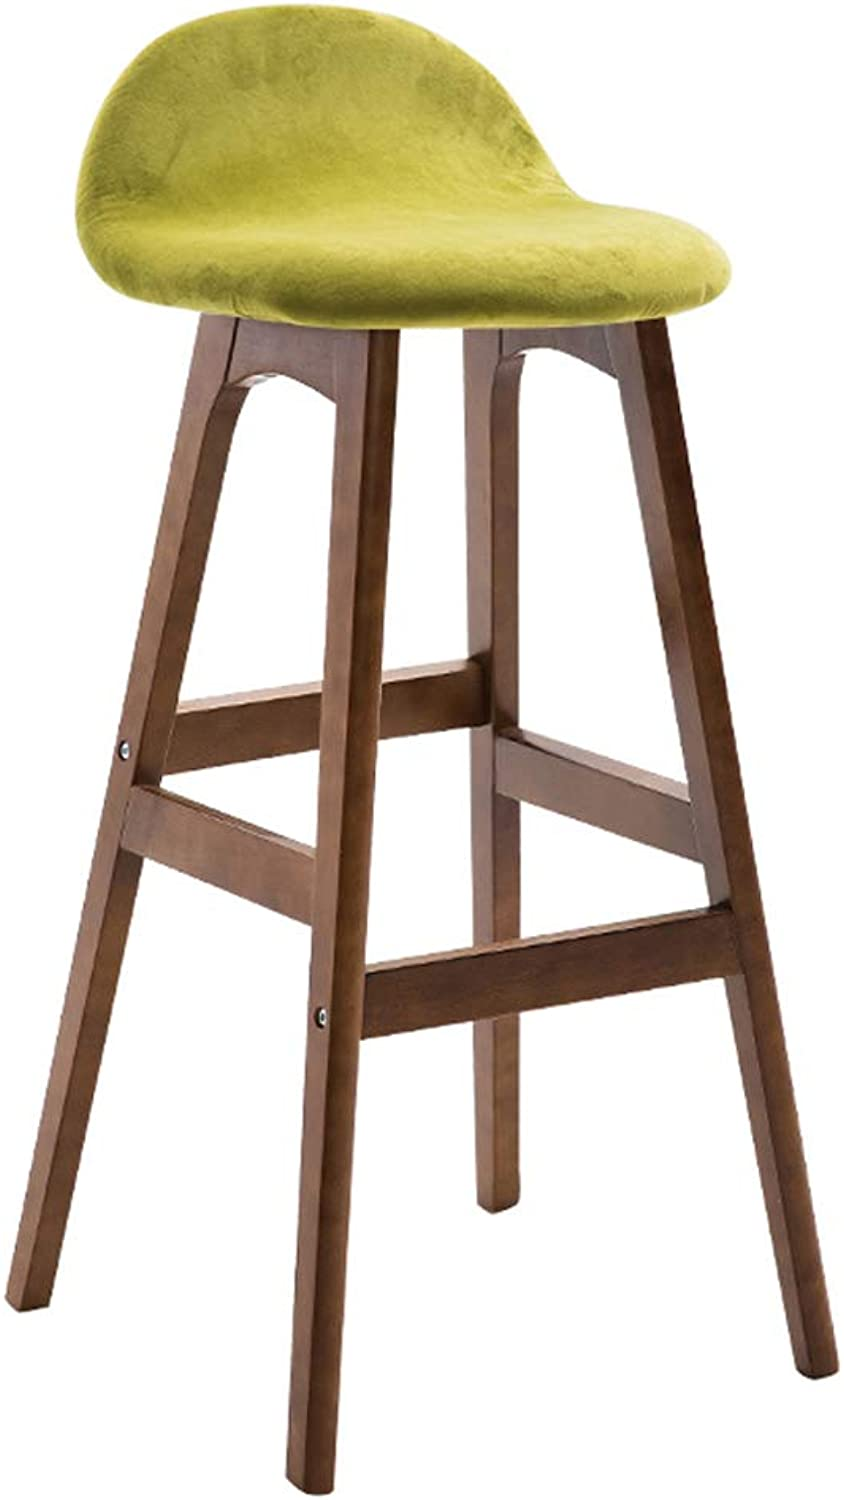 Bar Chair Solid Wood bar Stool Stylish high Stool bar Wooden Chair Table Back bar Stool Tea Shop high Chair Durable (color   B)